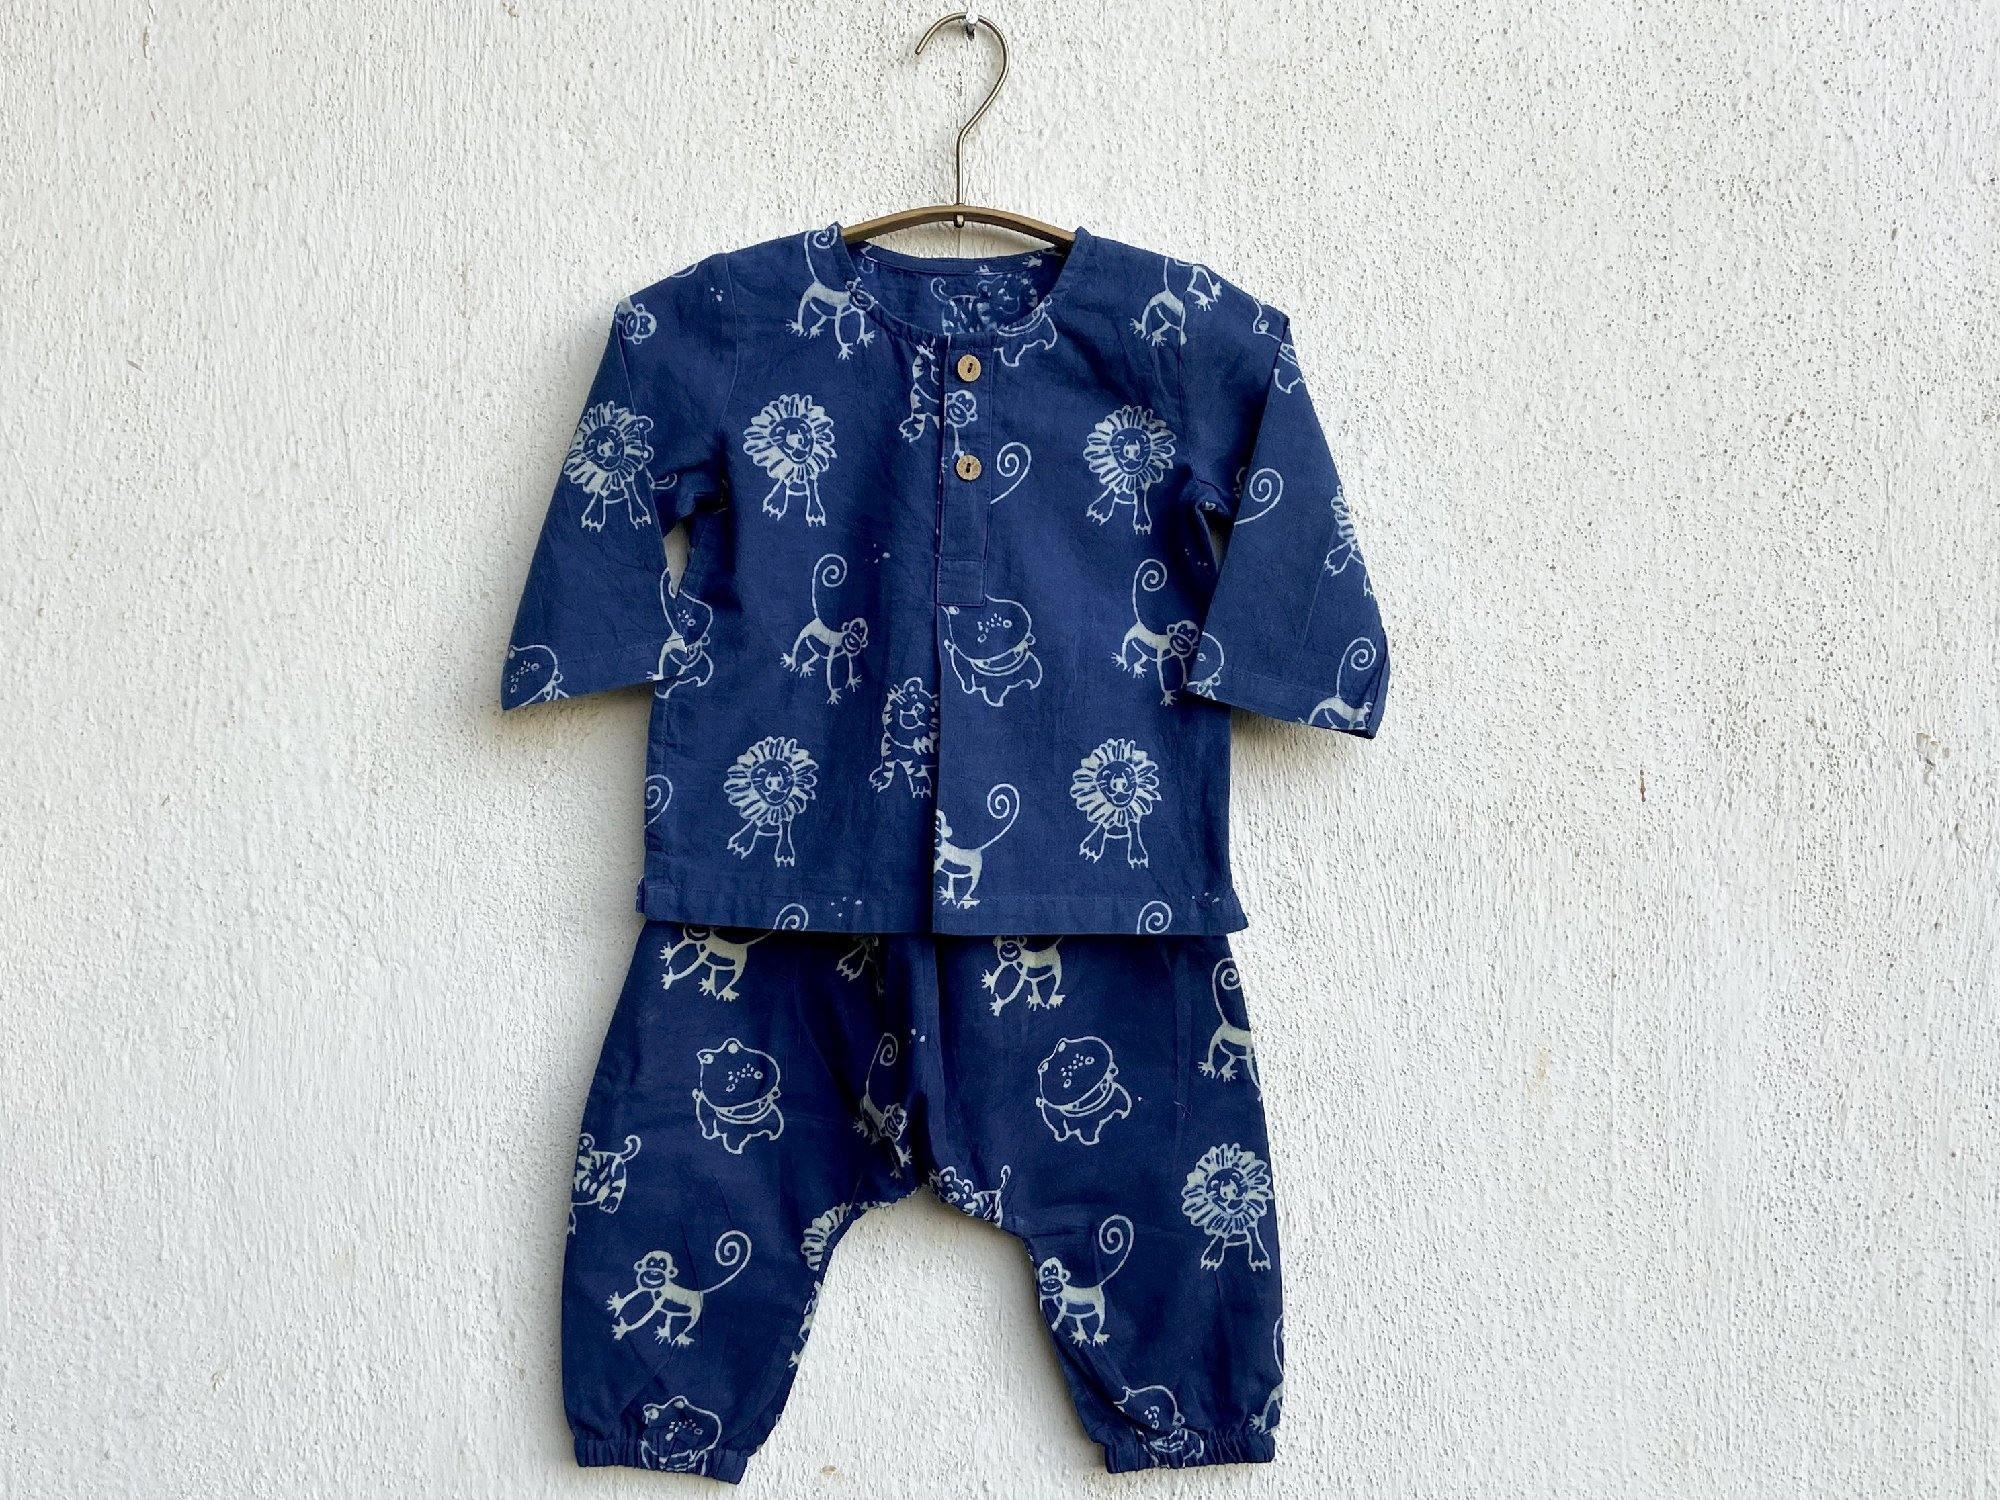 Zoo Print Kurta With Matching Pyjama For Babies - Infant Clothing Online